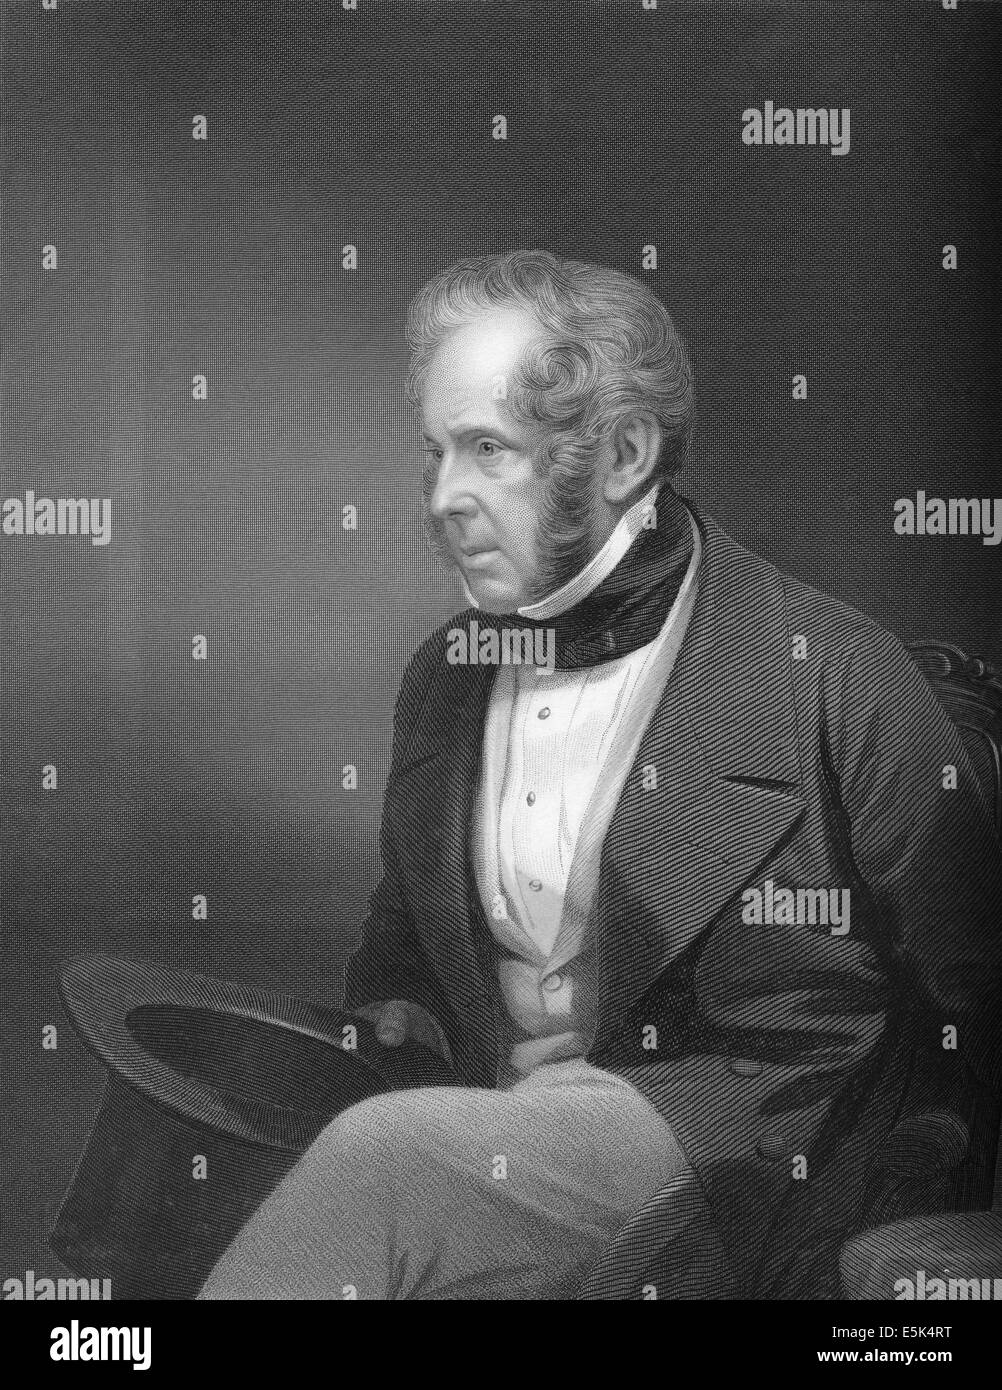 Lord Henry John Temple, 3rd Viscount Palmerston, 1784 - 1865, British statesman and Prime Minister, - Stock Image